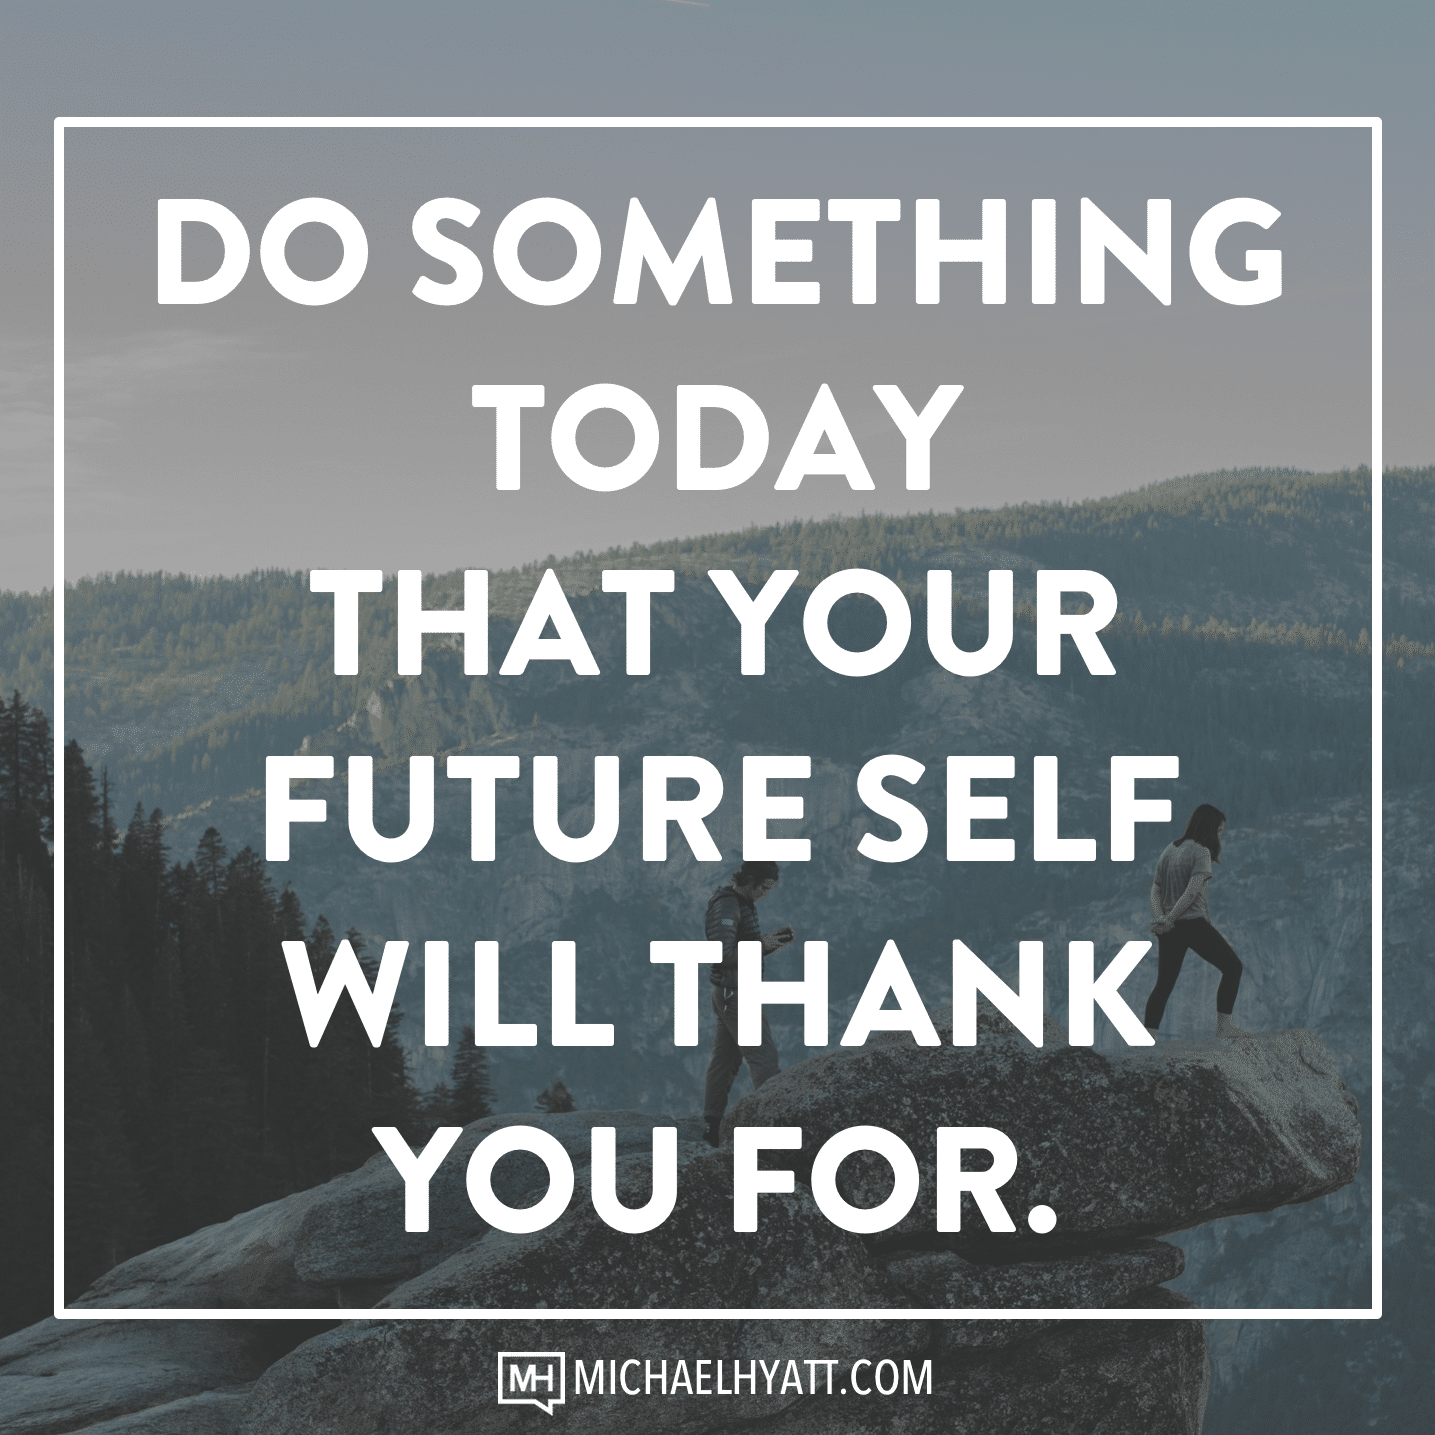 Coaching Quotes Wallpaper Do Something Today That Your Future Self Will Thank You For